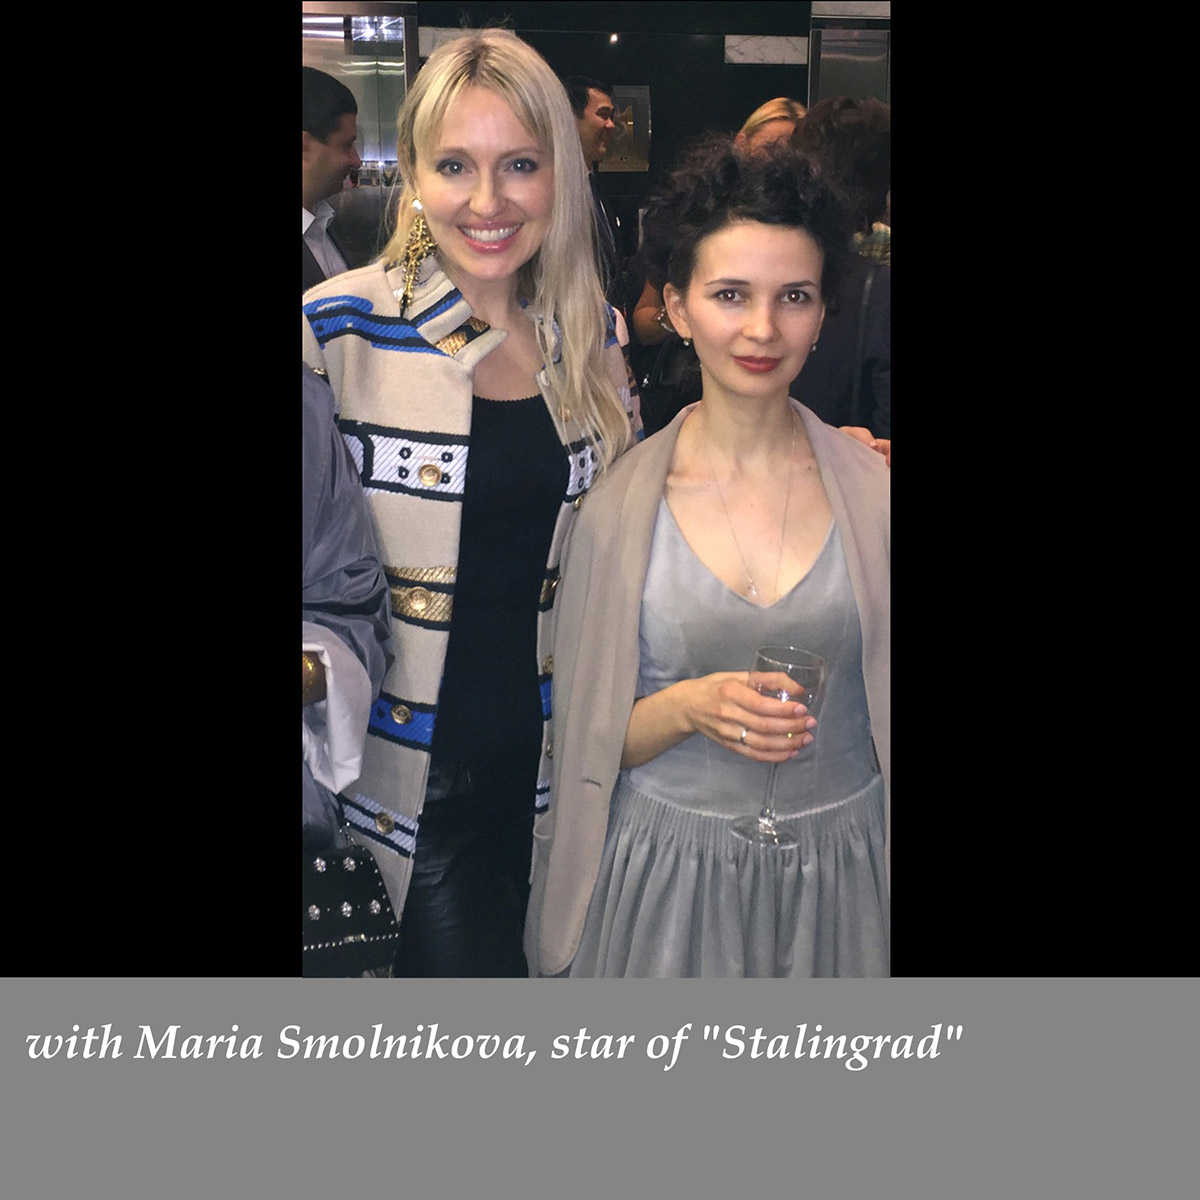 with-Maria-Smolnikova-star-of-Stalingrad